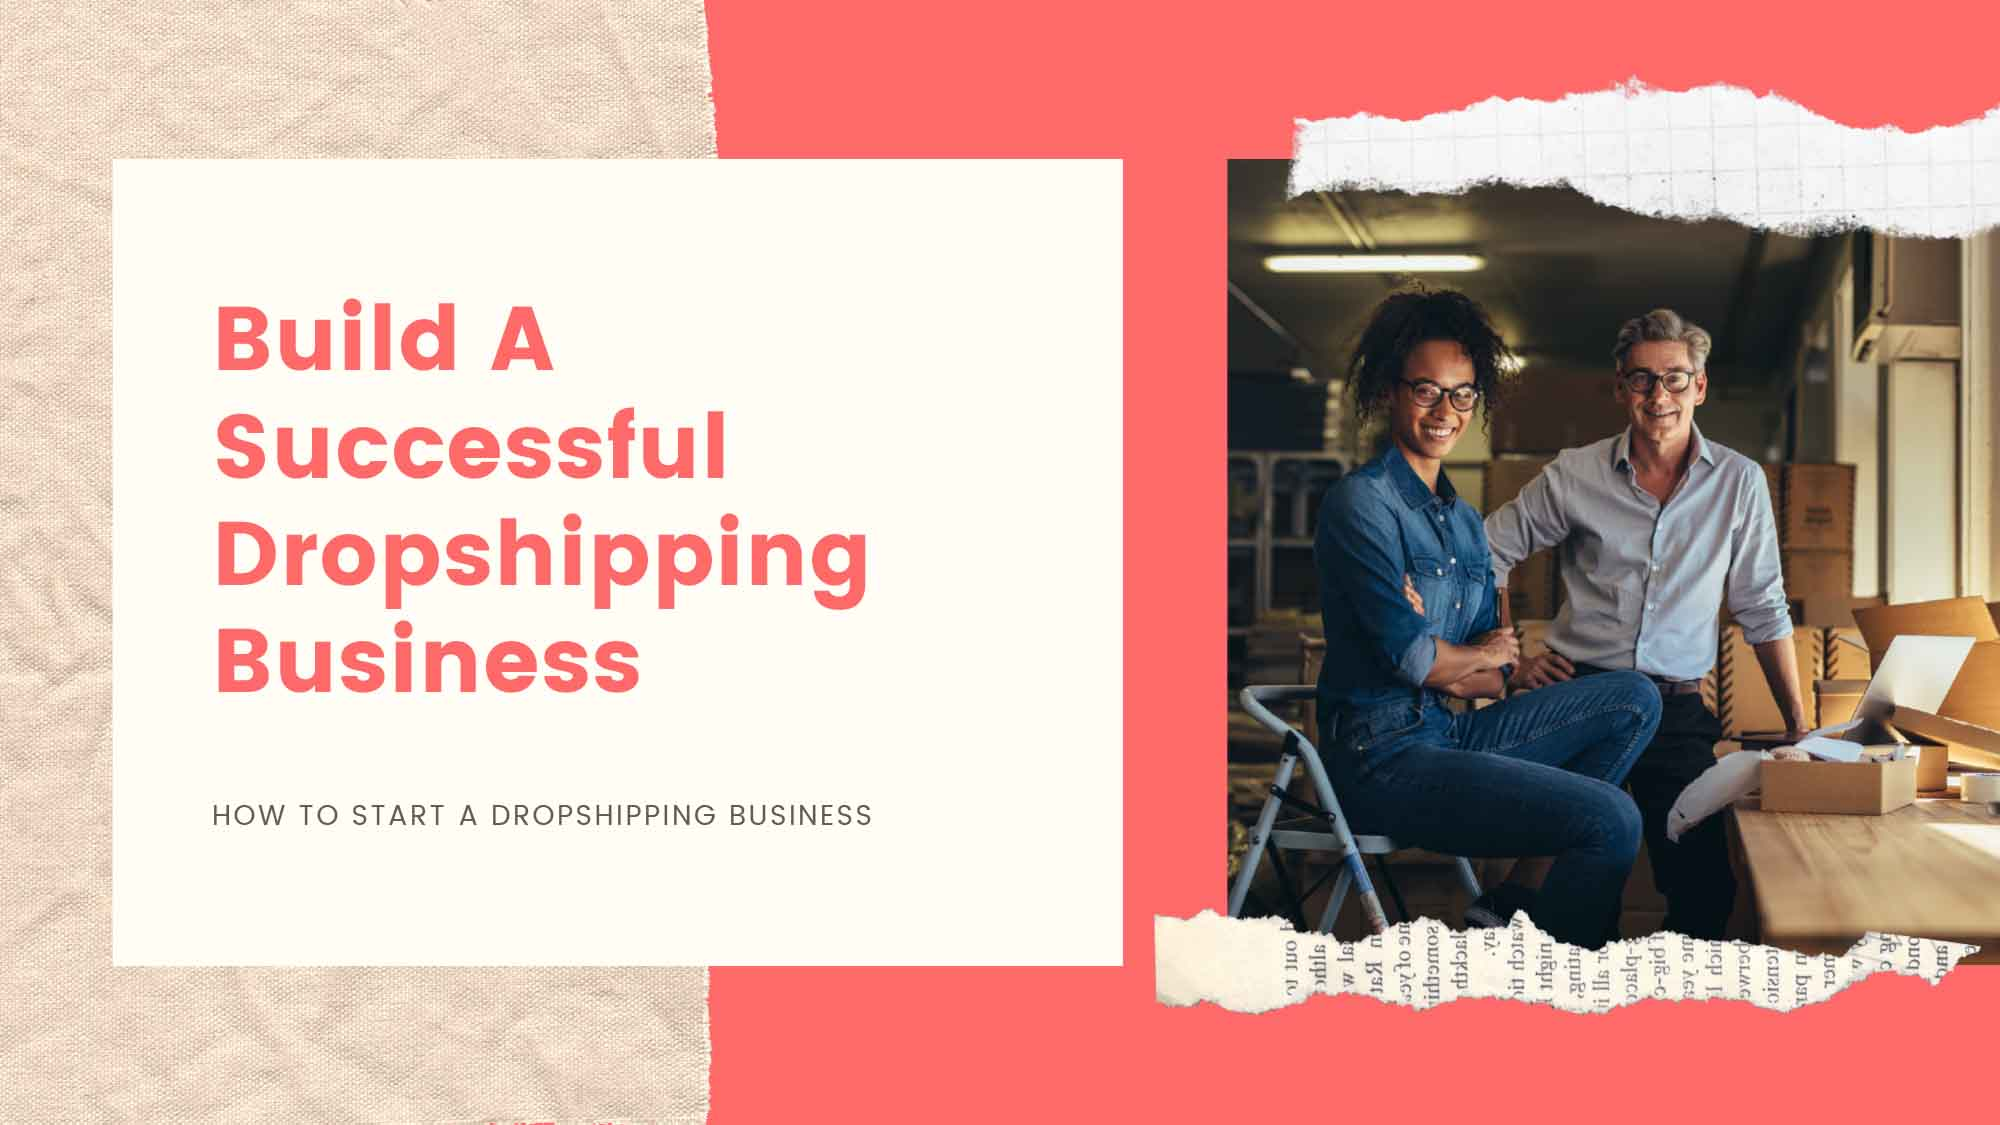 Build A Successful Dropshipping Business-DropshipUSA